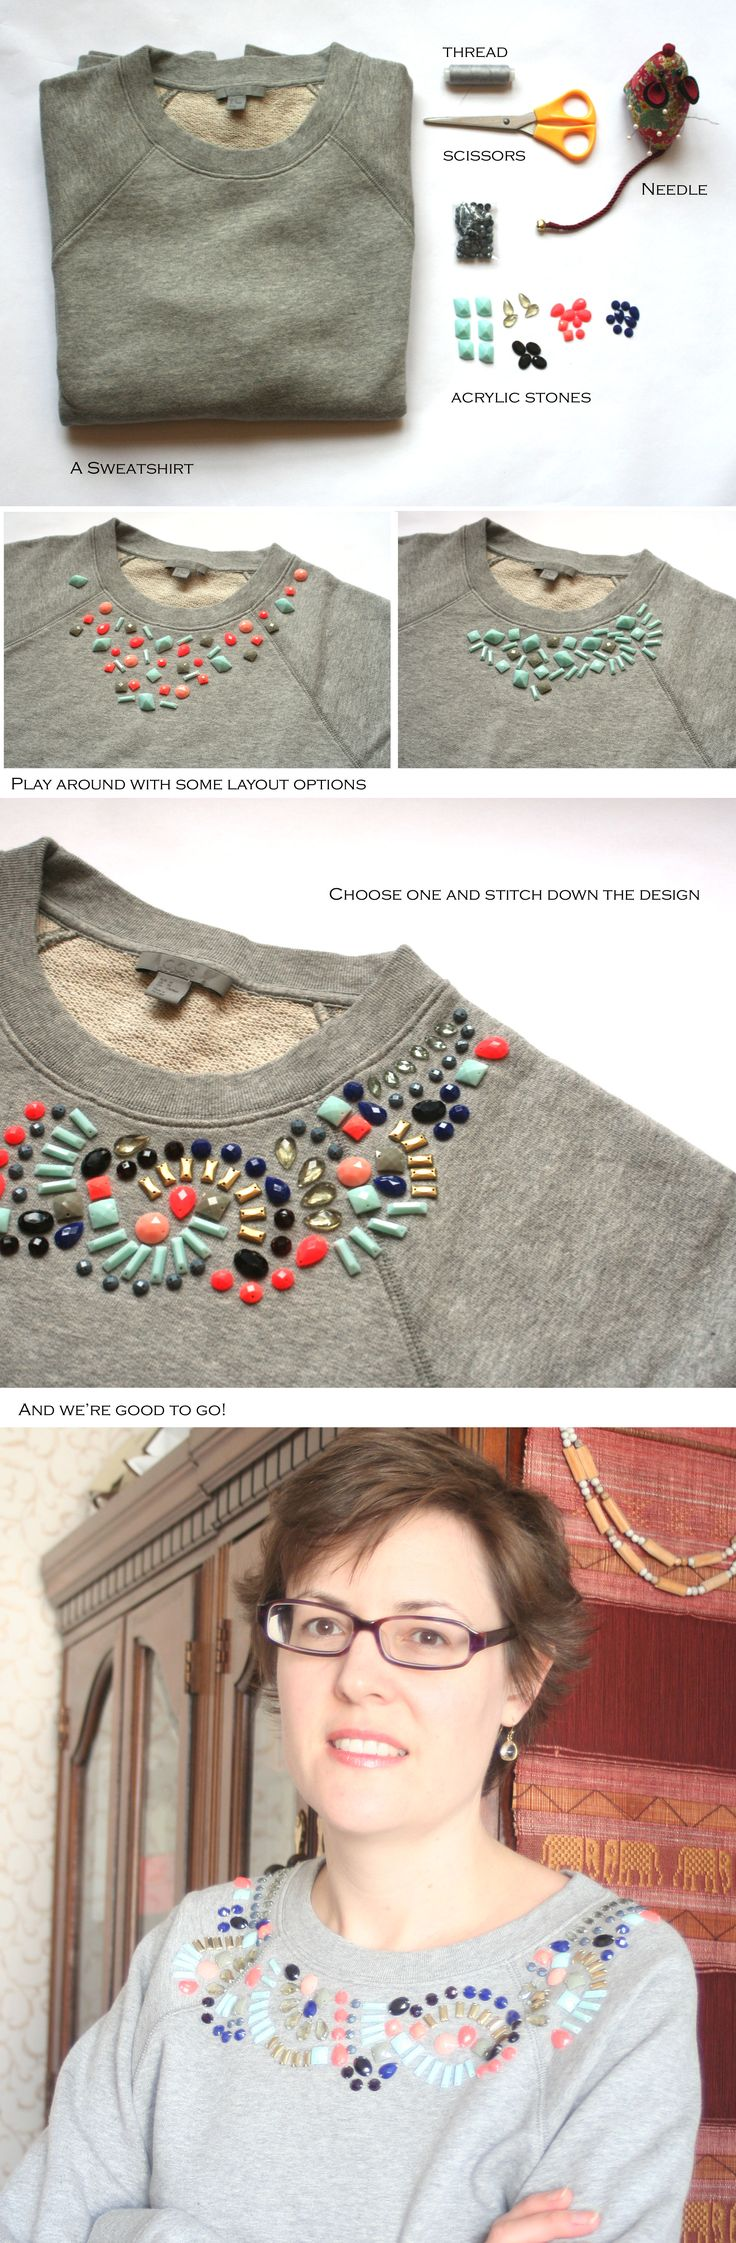 DIY embellished sweatshirt: DIY embellished sweatshirt